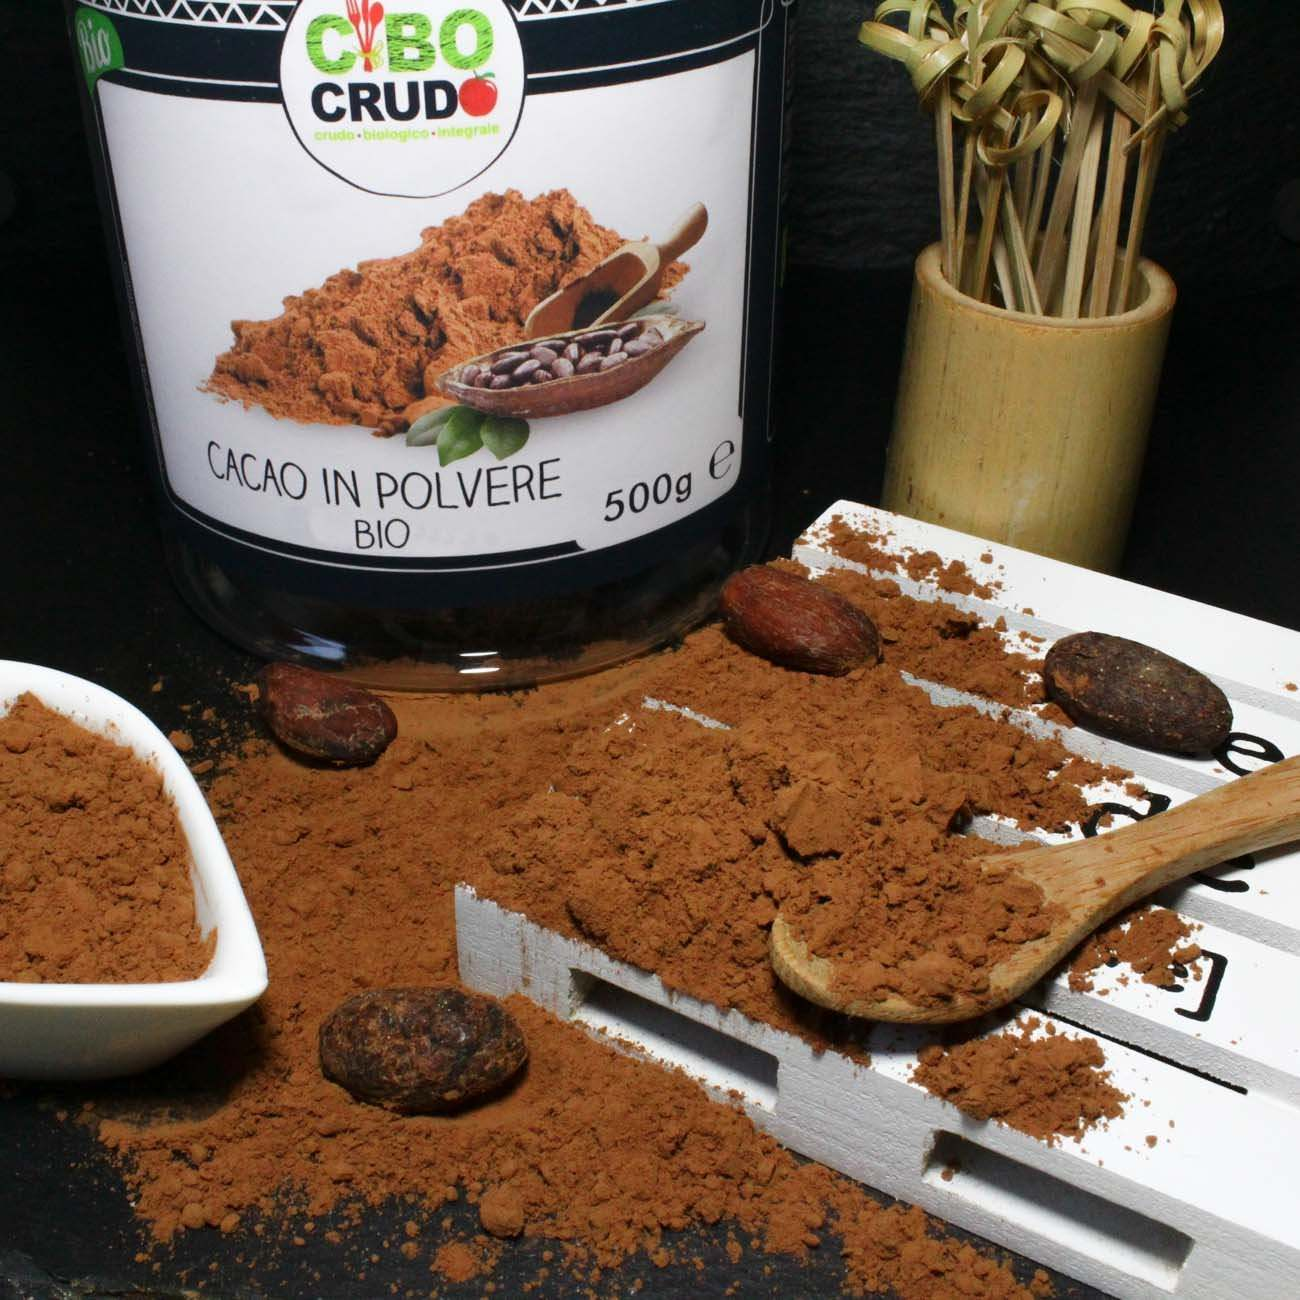 Cacao in Polvere<br/>Crudo Bio - Cocoa Powder Raw Organic - 500g